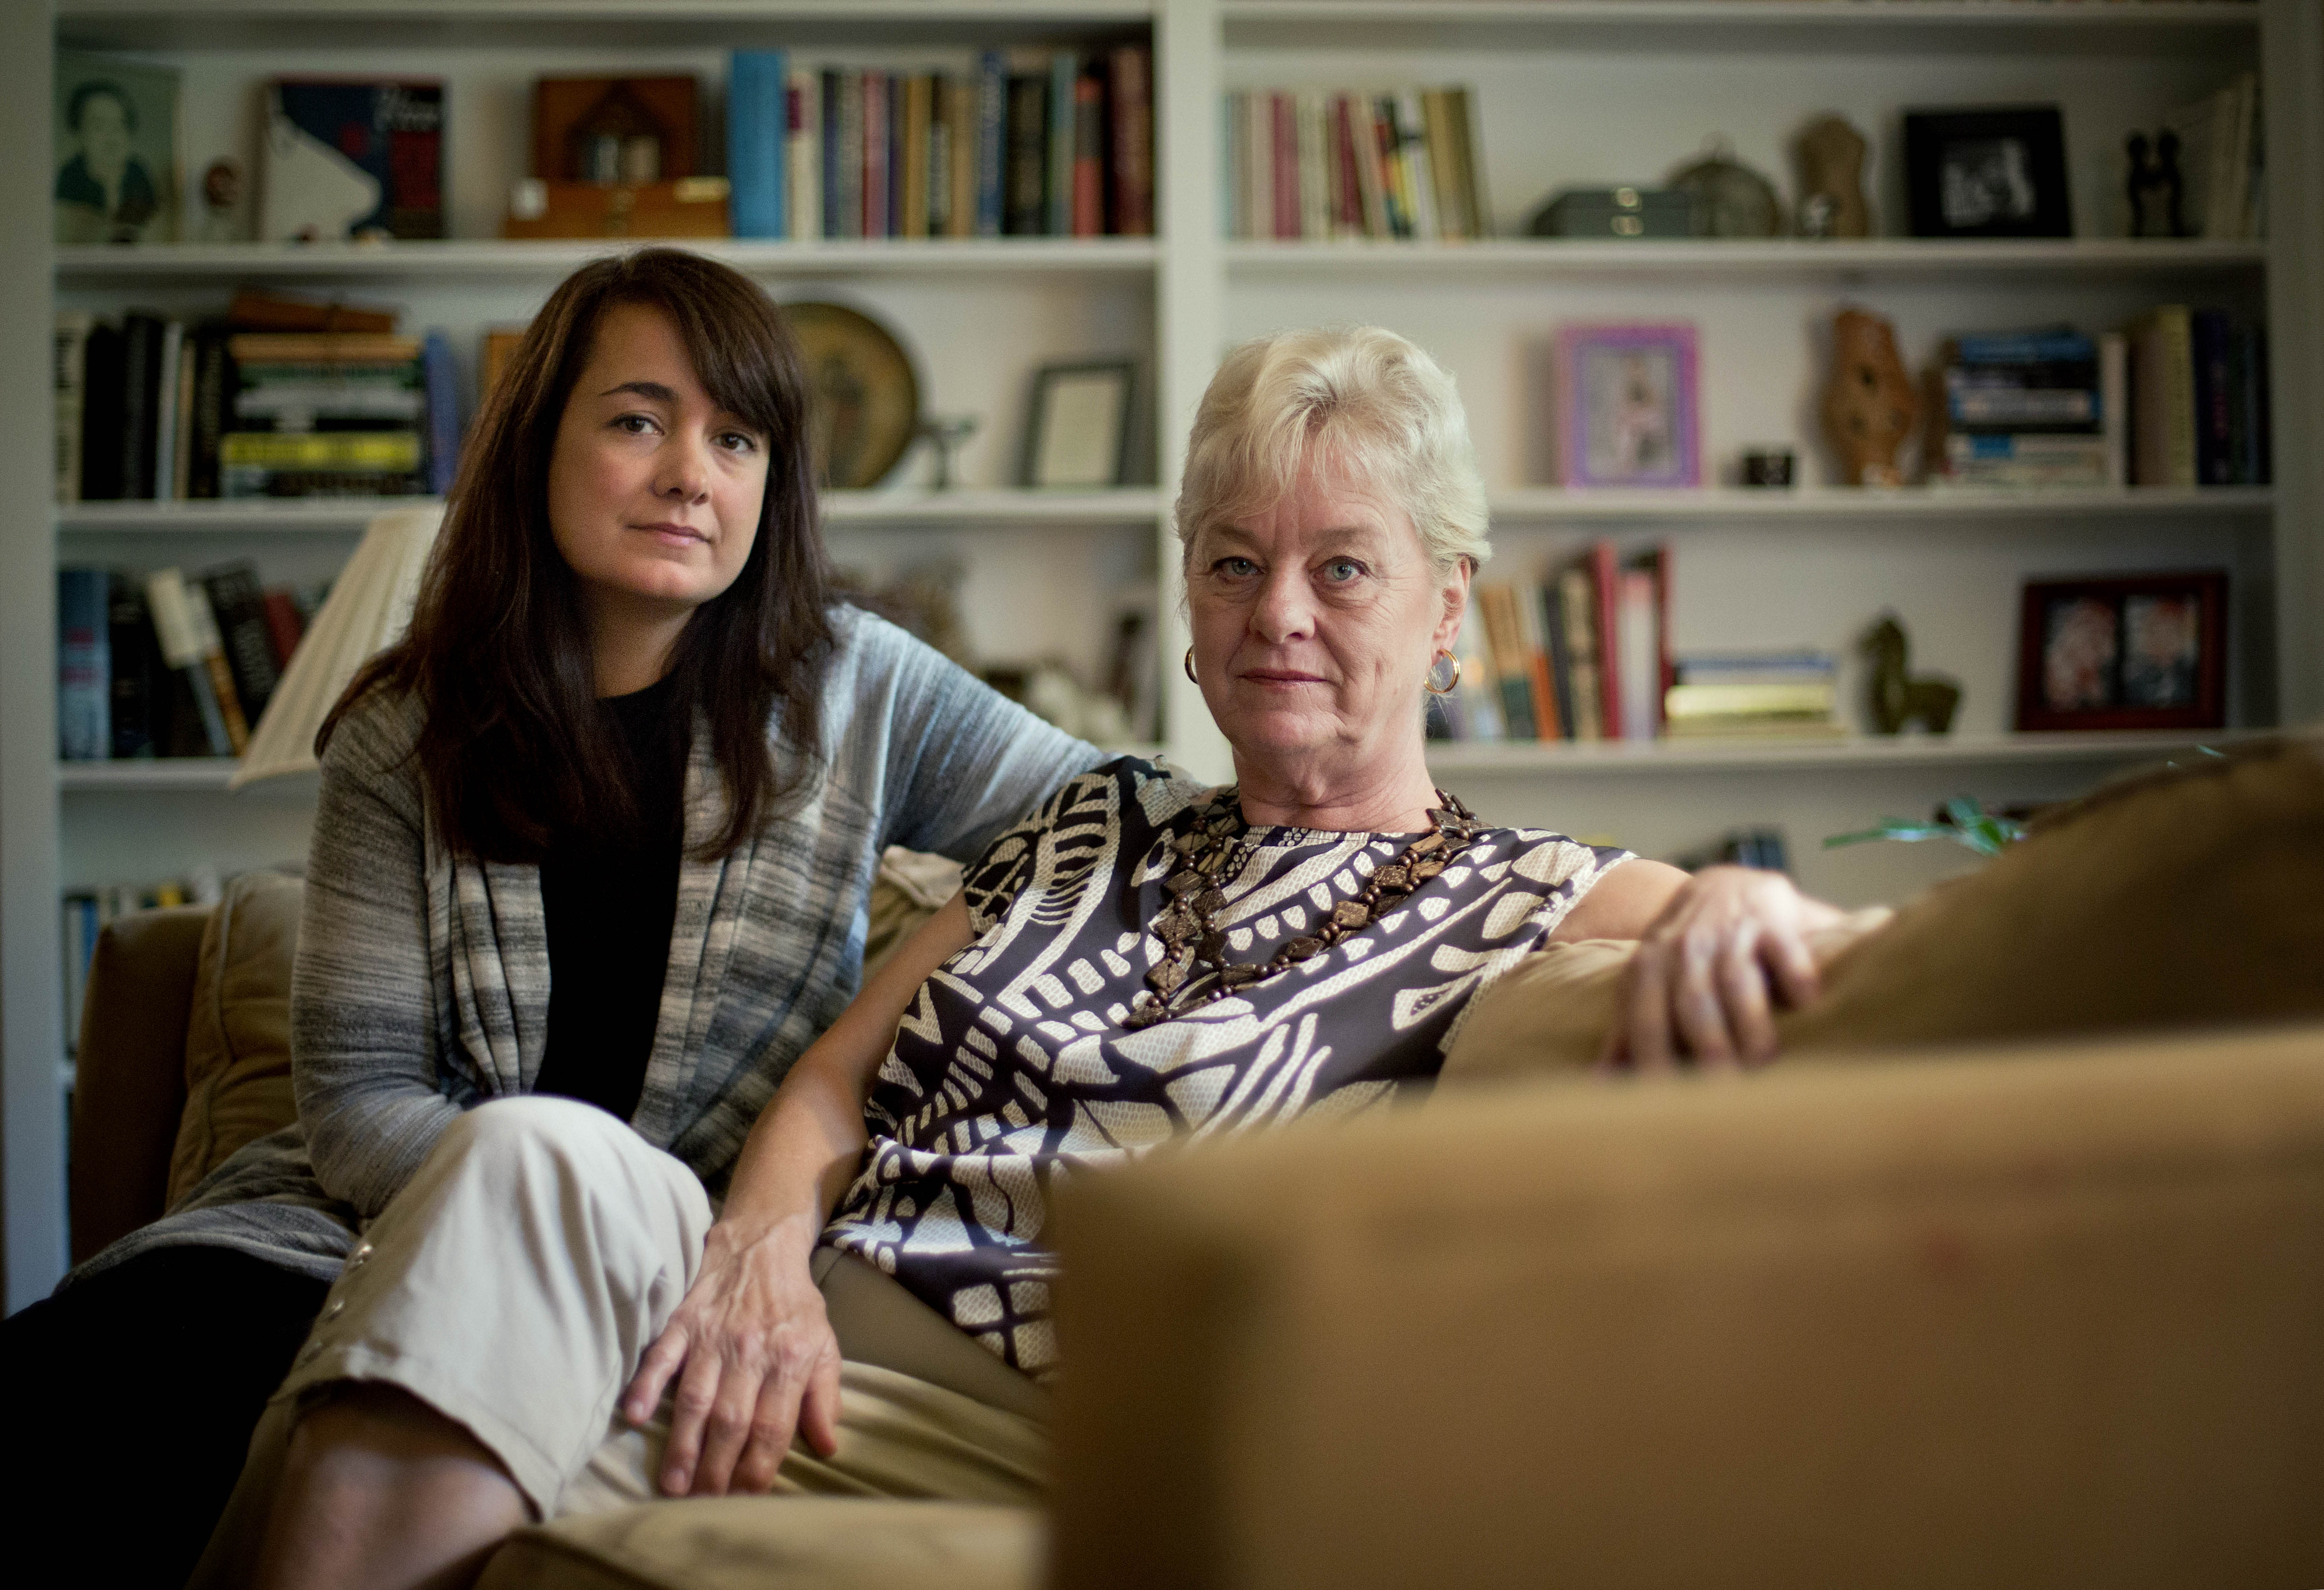 """Keely Walker Muse, left, sits with her mother Eve Walker in the living room of her home in Atlanta, Saturday, Aug. 17, 2013. Mexican drug lord Rafael Caro Quintero was sentenced to 40 years in prison for the 1985 murders of her father, journalist John Clay Walker, his friend Alberto Radelat, and DEA agent Enrique """"Kiki"""" Camarena, among other crimes. According to witnesses interviewed by DEA agents hunting for Camarena's killers, the cartel had mistaken Walker and Radelat for undercover agents. Caro Quintero walked free this month, 12 years early, after a local appeals court overturned his sentence for three of the murders. For the families of the six Americans slain before Camarena, the decision has awakened bitter memories of the brutality that ushered in the modern era of Mexican drug trafficking. (AP Photo/David Goldman)"""